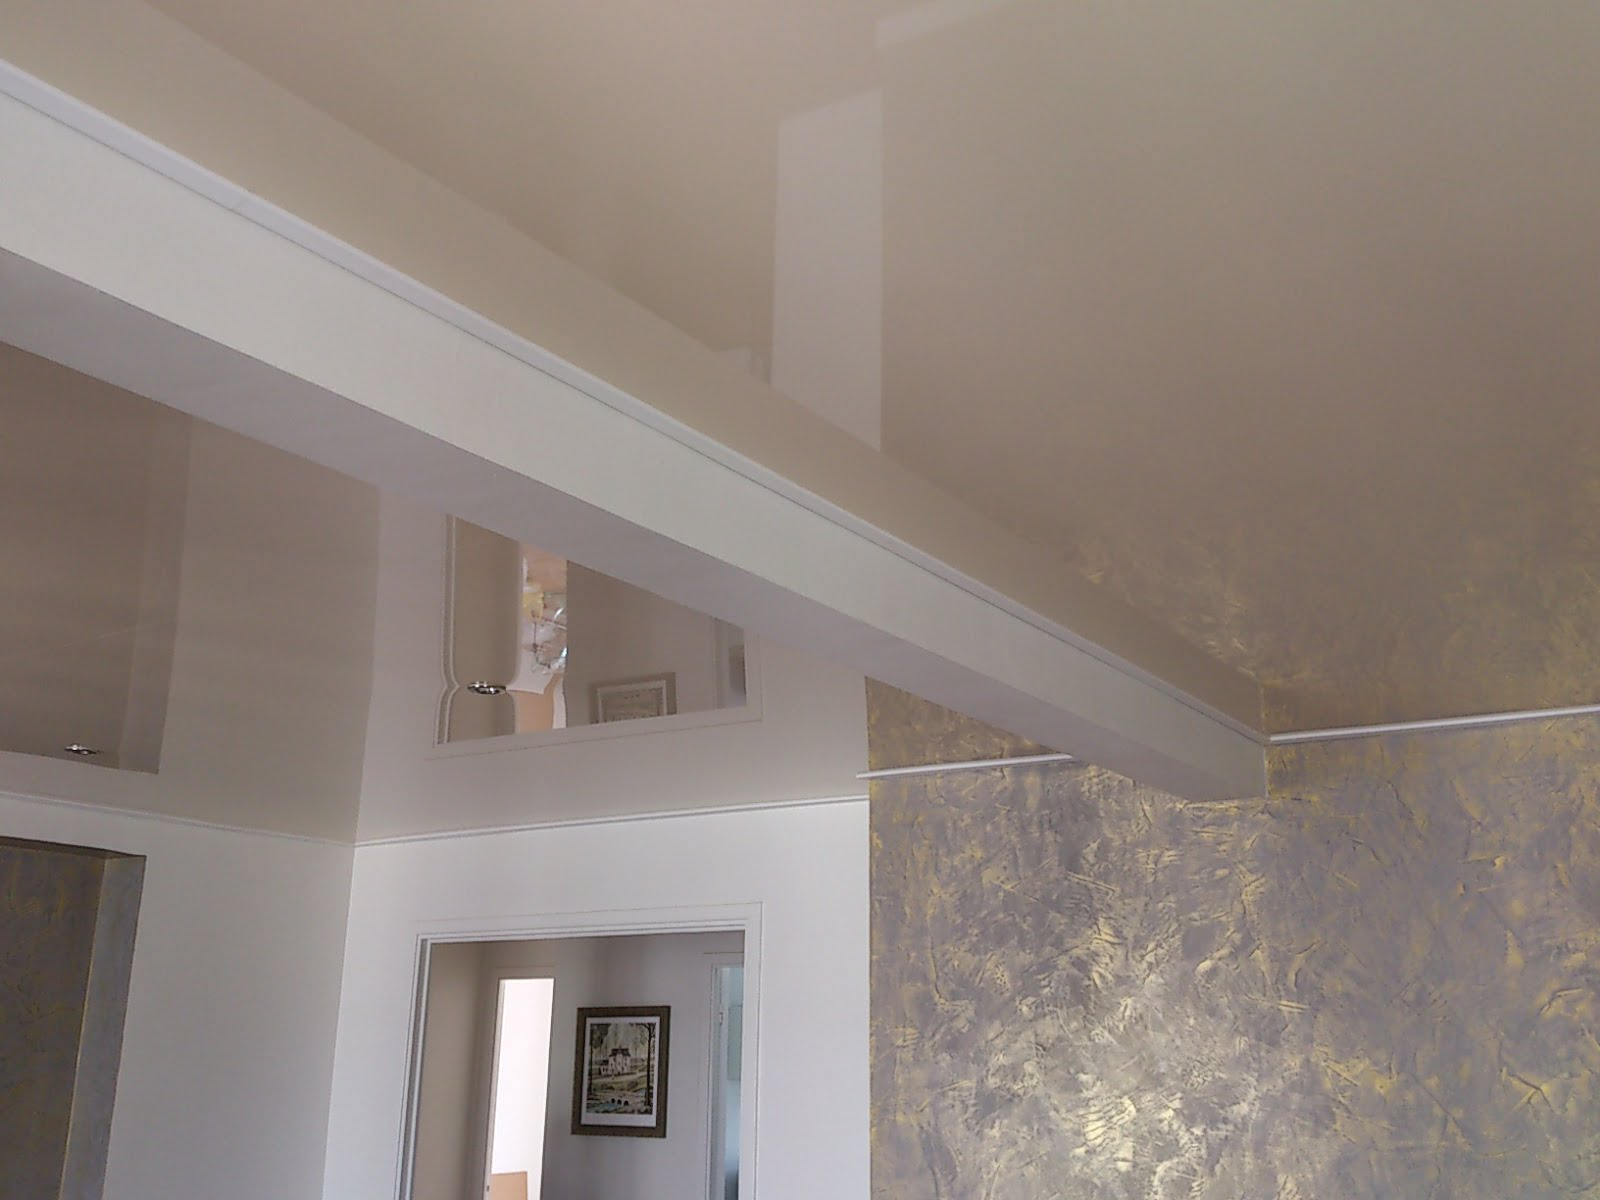 The Stretch Ceiling System Fort Lauderdale